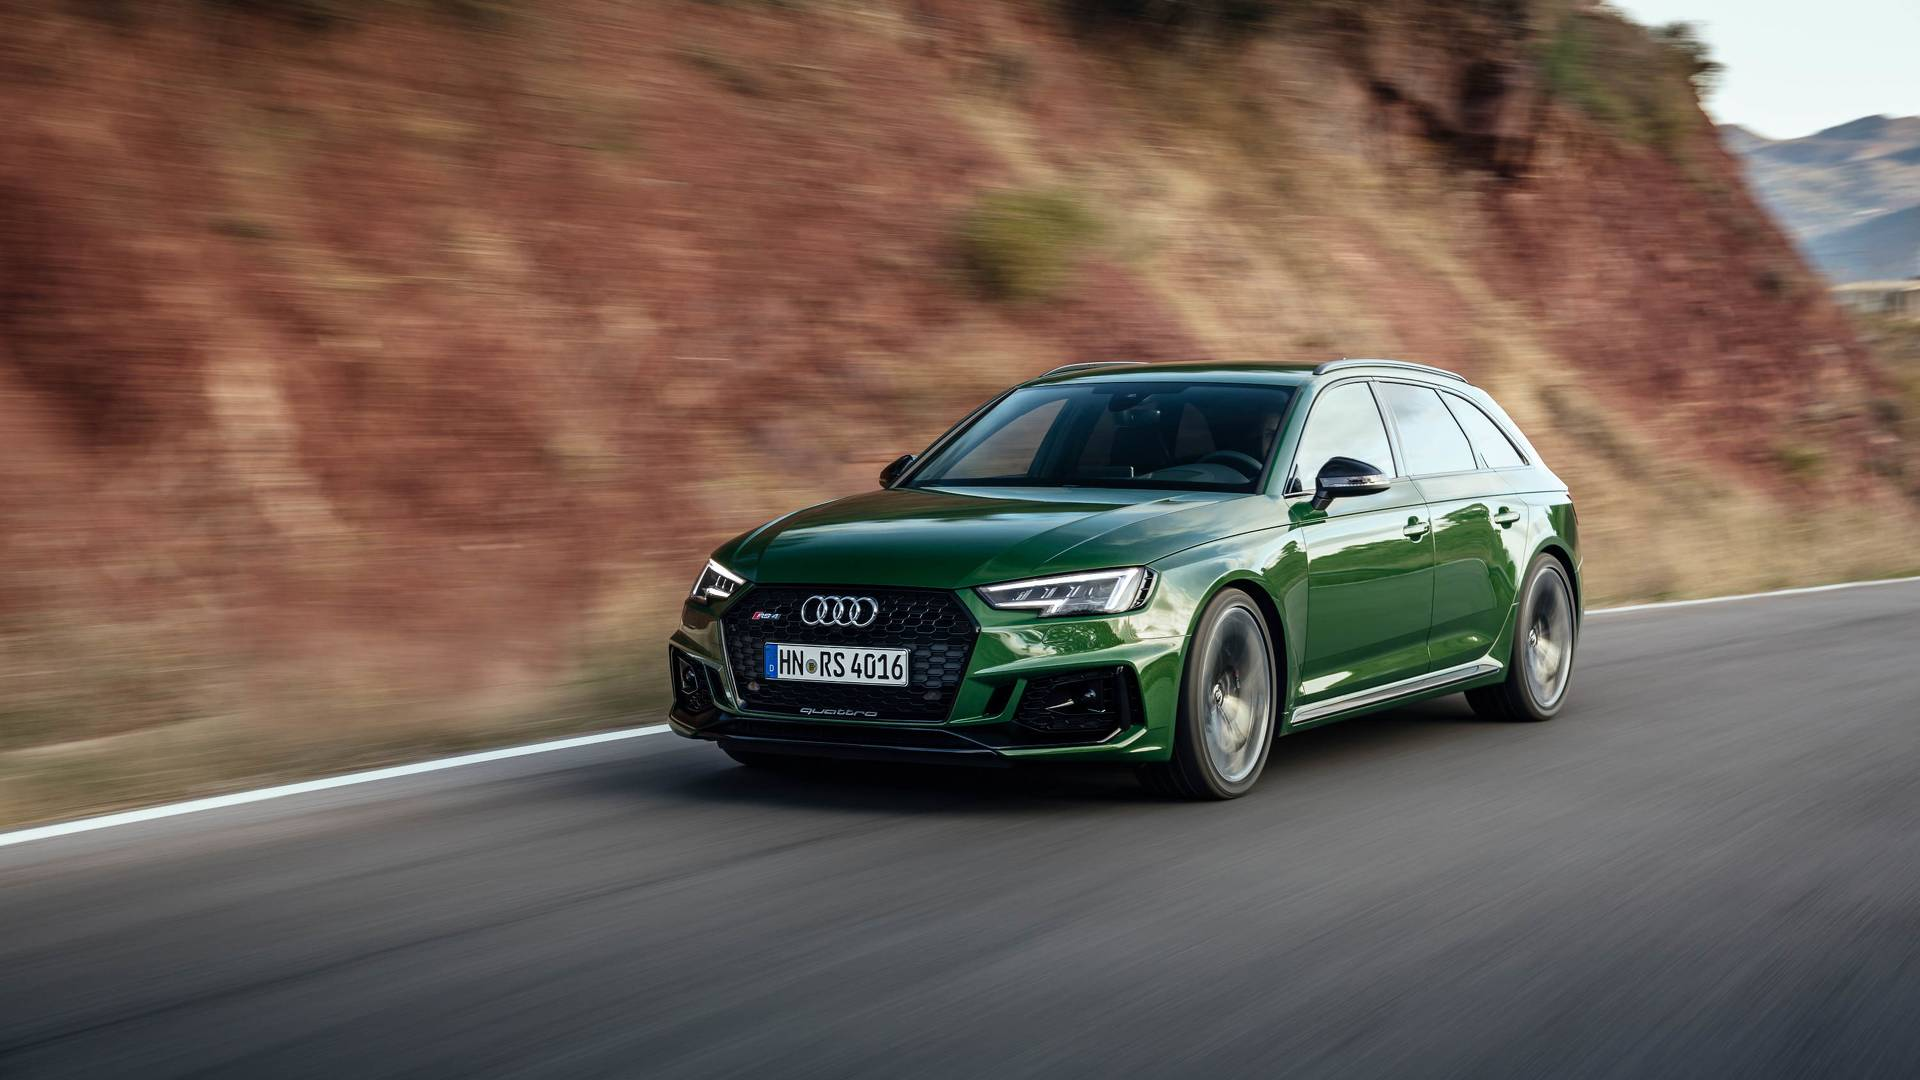 Curious To Find Out How Much Power Audi RS4 Avant Actually Has?